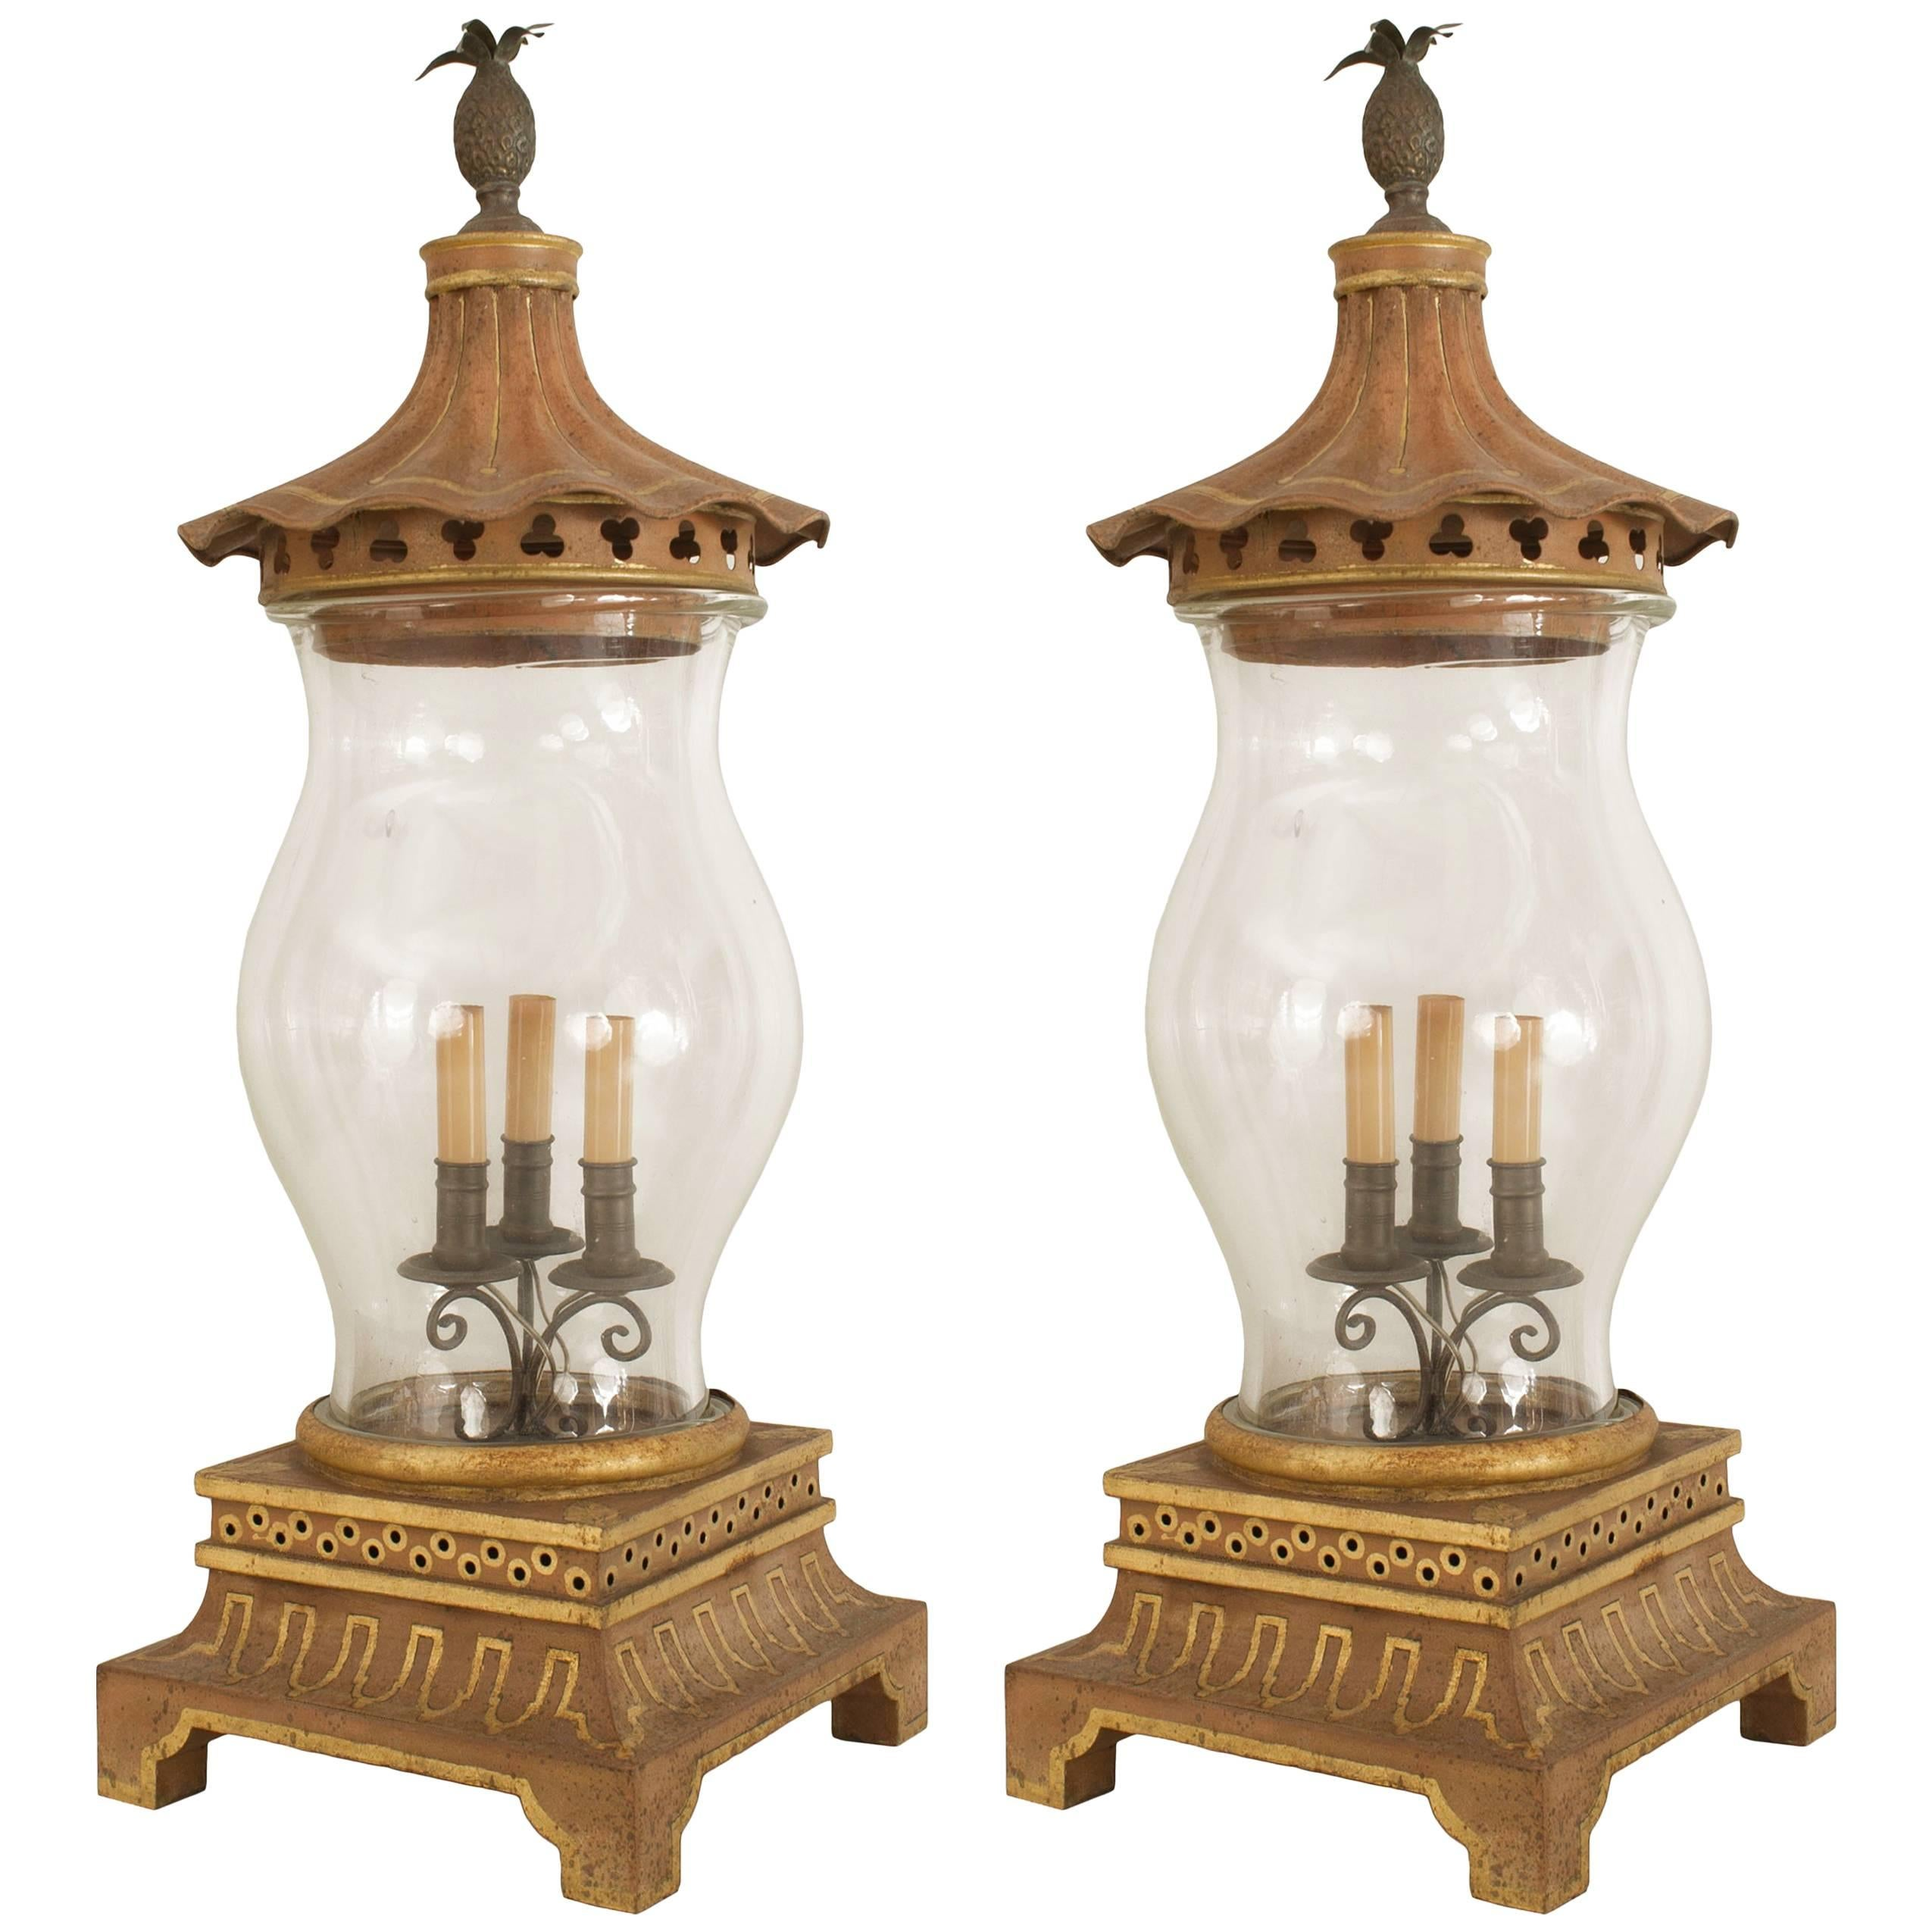 Pair of English Regency Style Gilt and Tole Hurricane Lamps